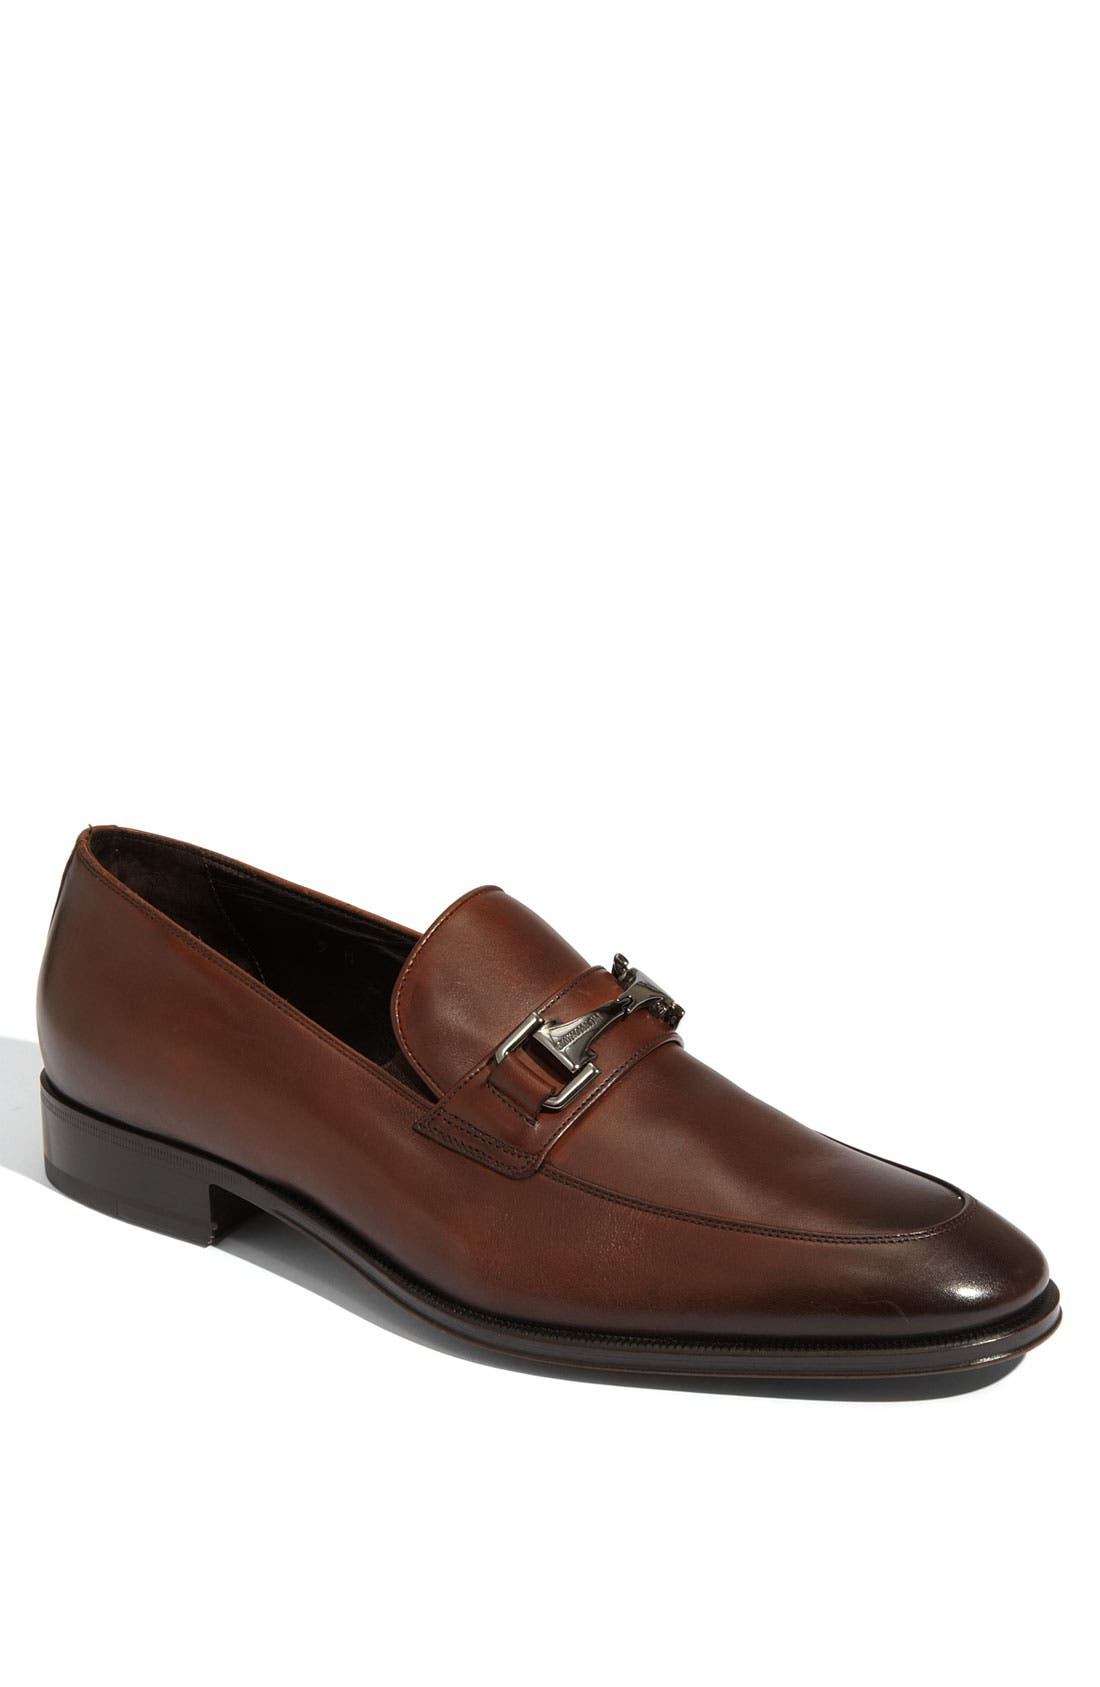 Main Image - Bruno Magli 'Rigen' Loafer